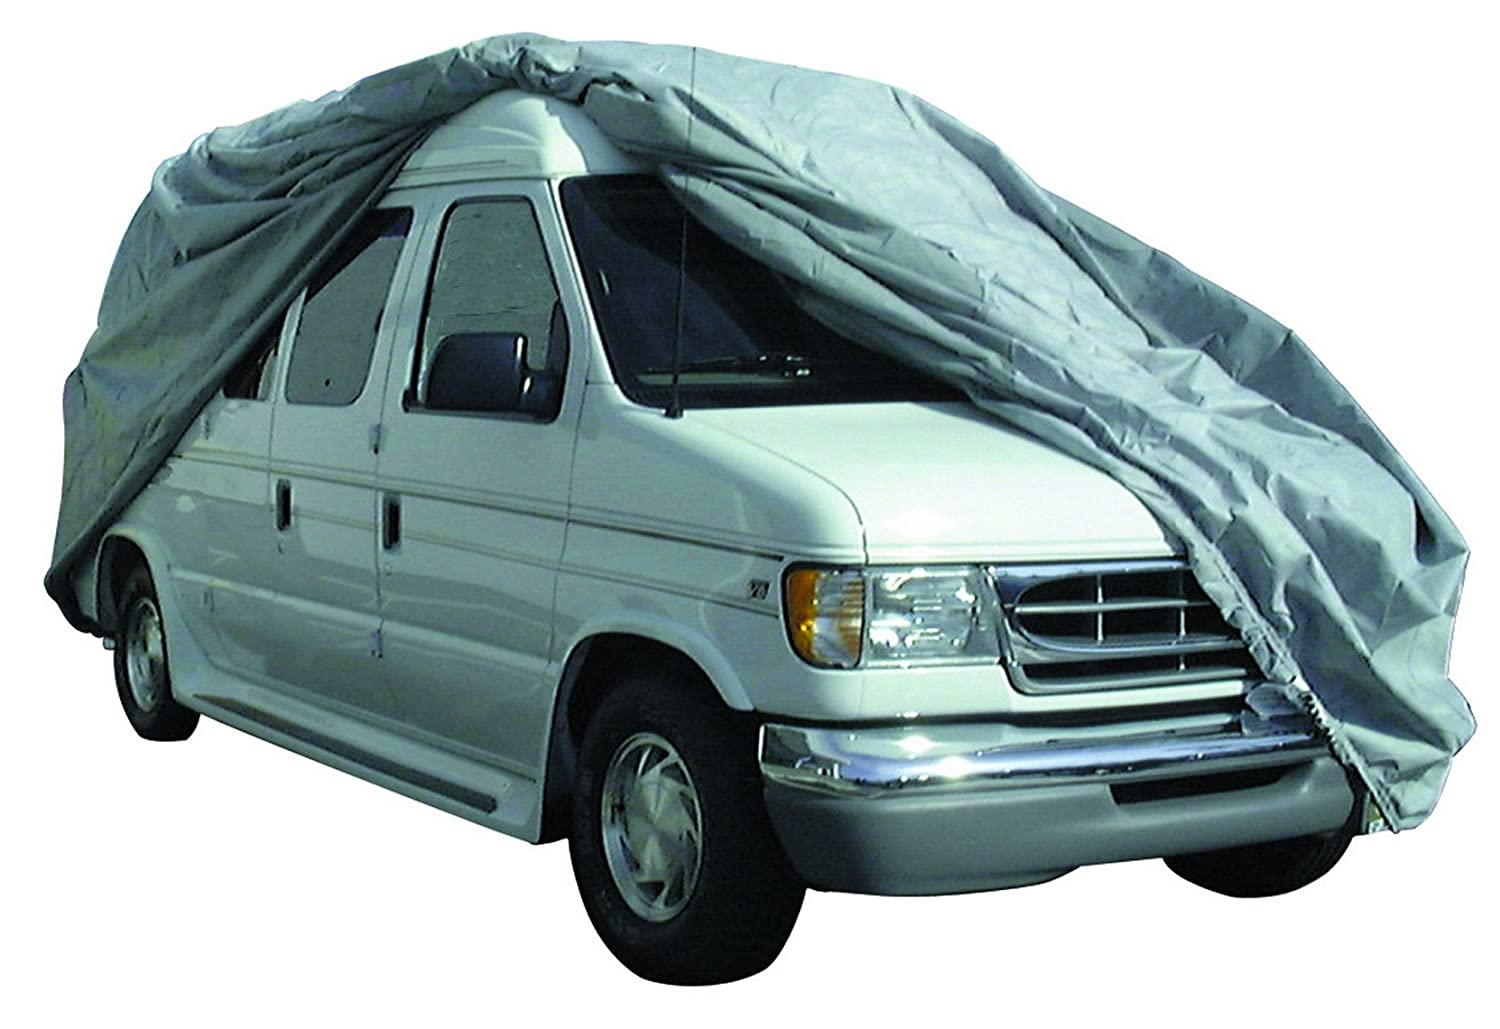 ADCO 12230 SFS Aqua Shed Class B RV Cover - Up to 21' w/36' Bubble Top